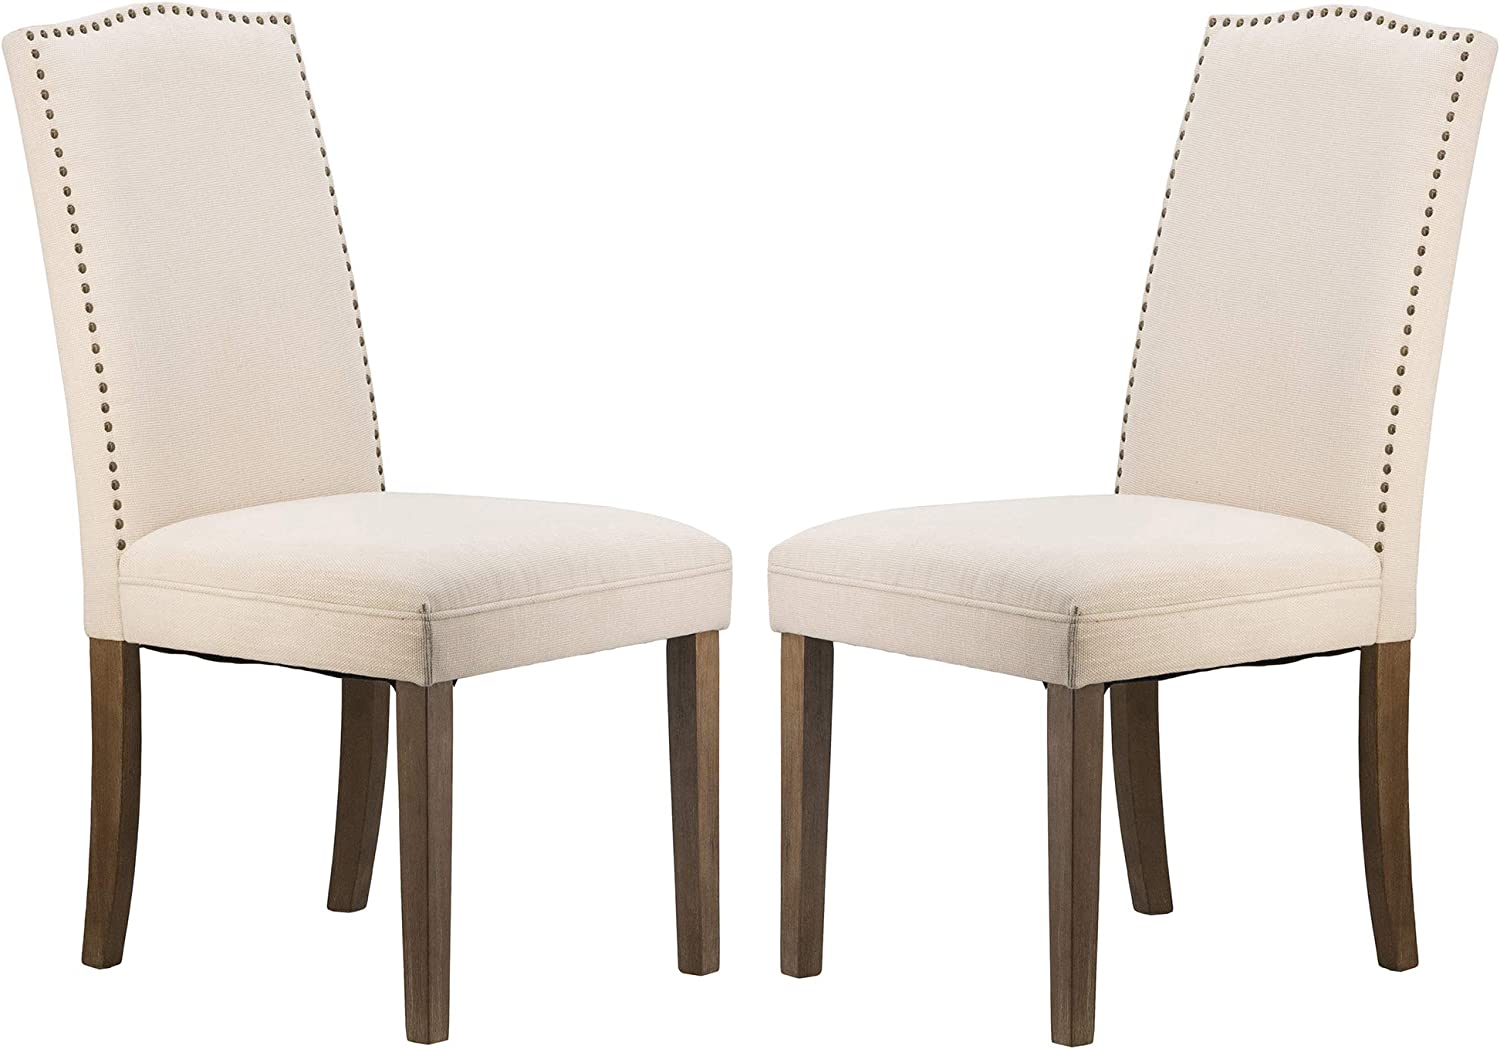 A&B Home Furniture Dining Chairs Urban Style with Nailhead Trim for Dining Room, Kitchen, Living Room, Set of 2(Beige)